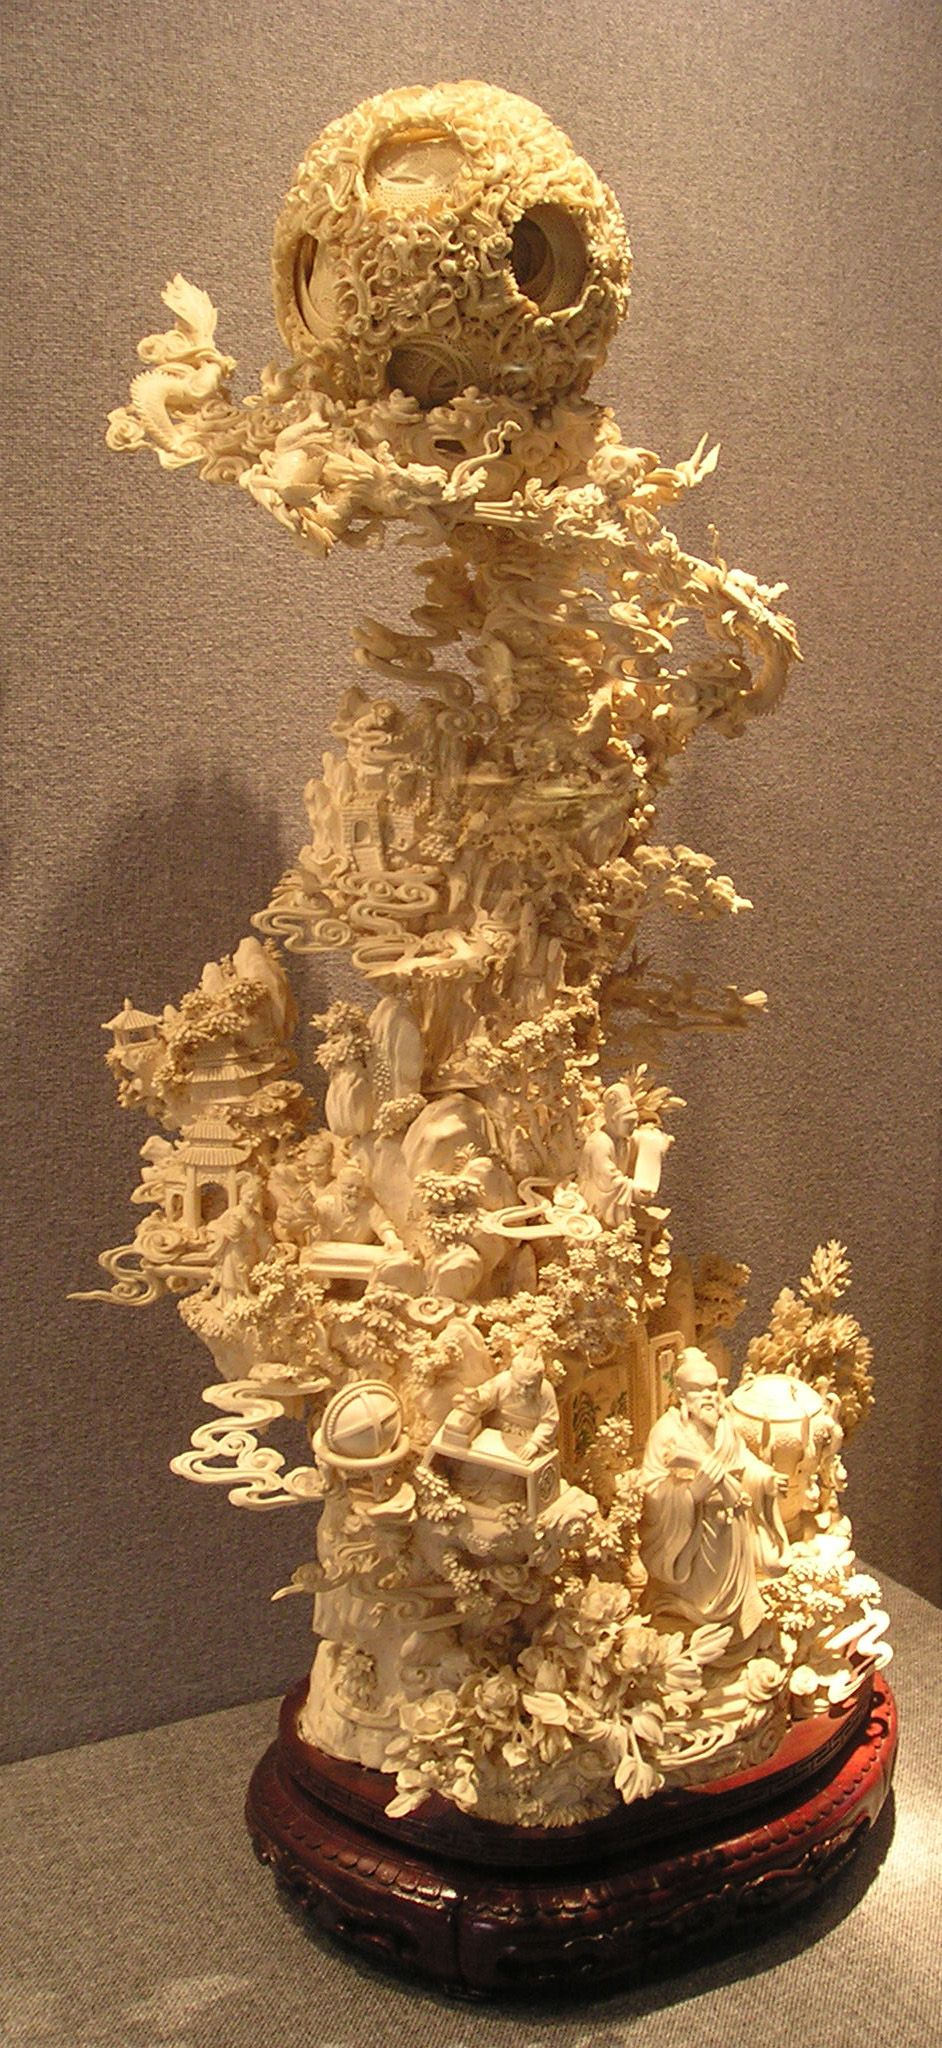 Image detail for -File:Chinese ivory carving.jpg - Wikipedia, the free encyclopedia